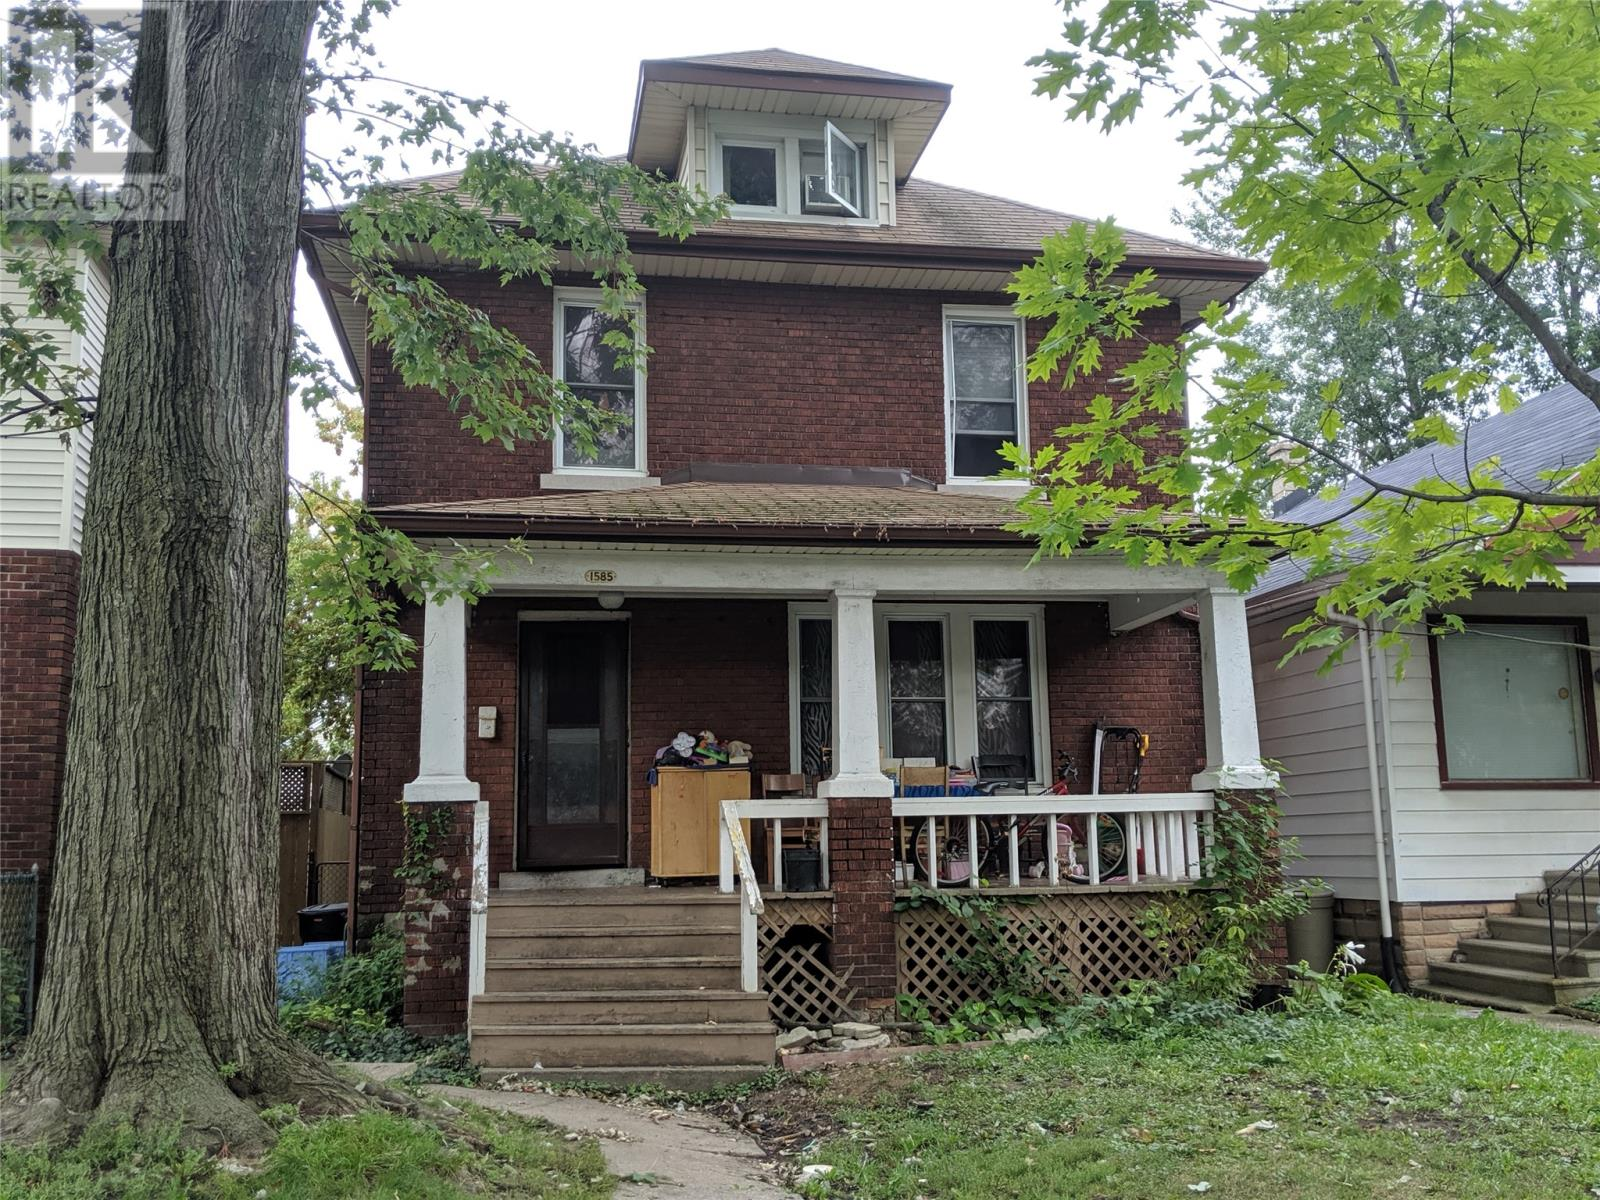 Removed: 1585 Church Street, Windsor, ON - Removed on 2019-09-27 06:12:18